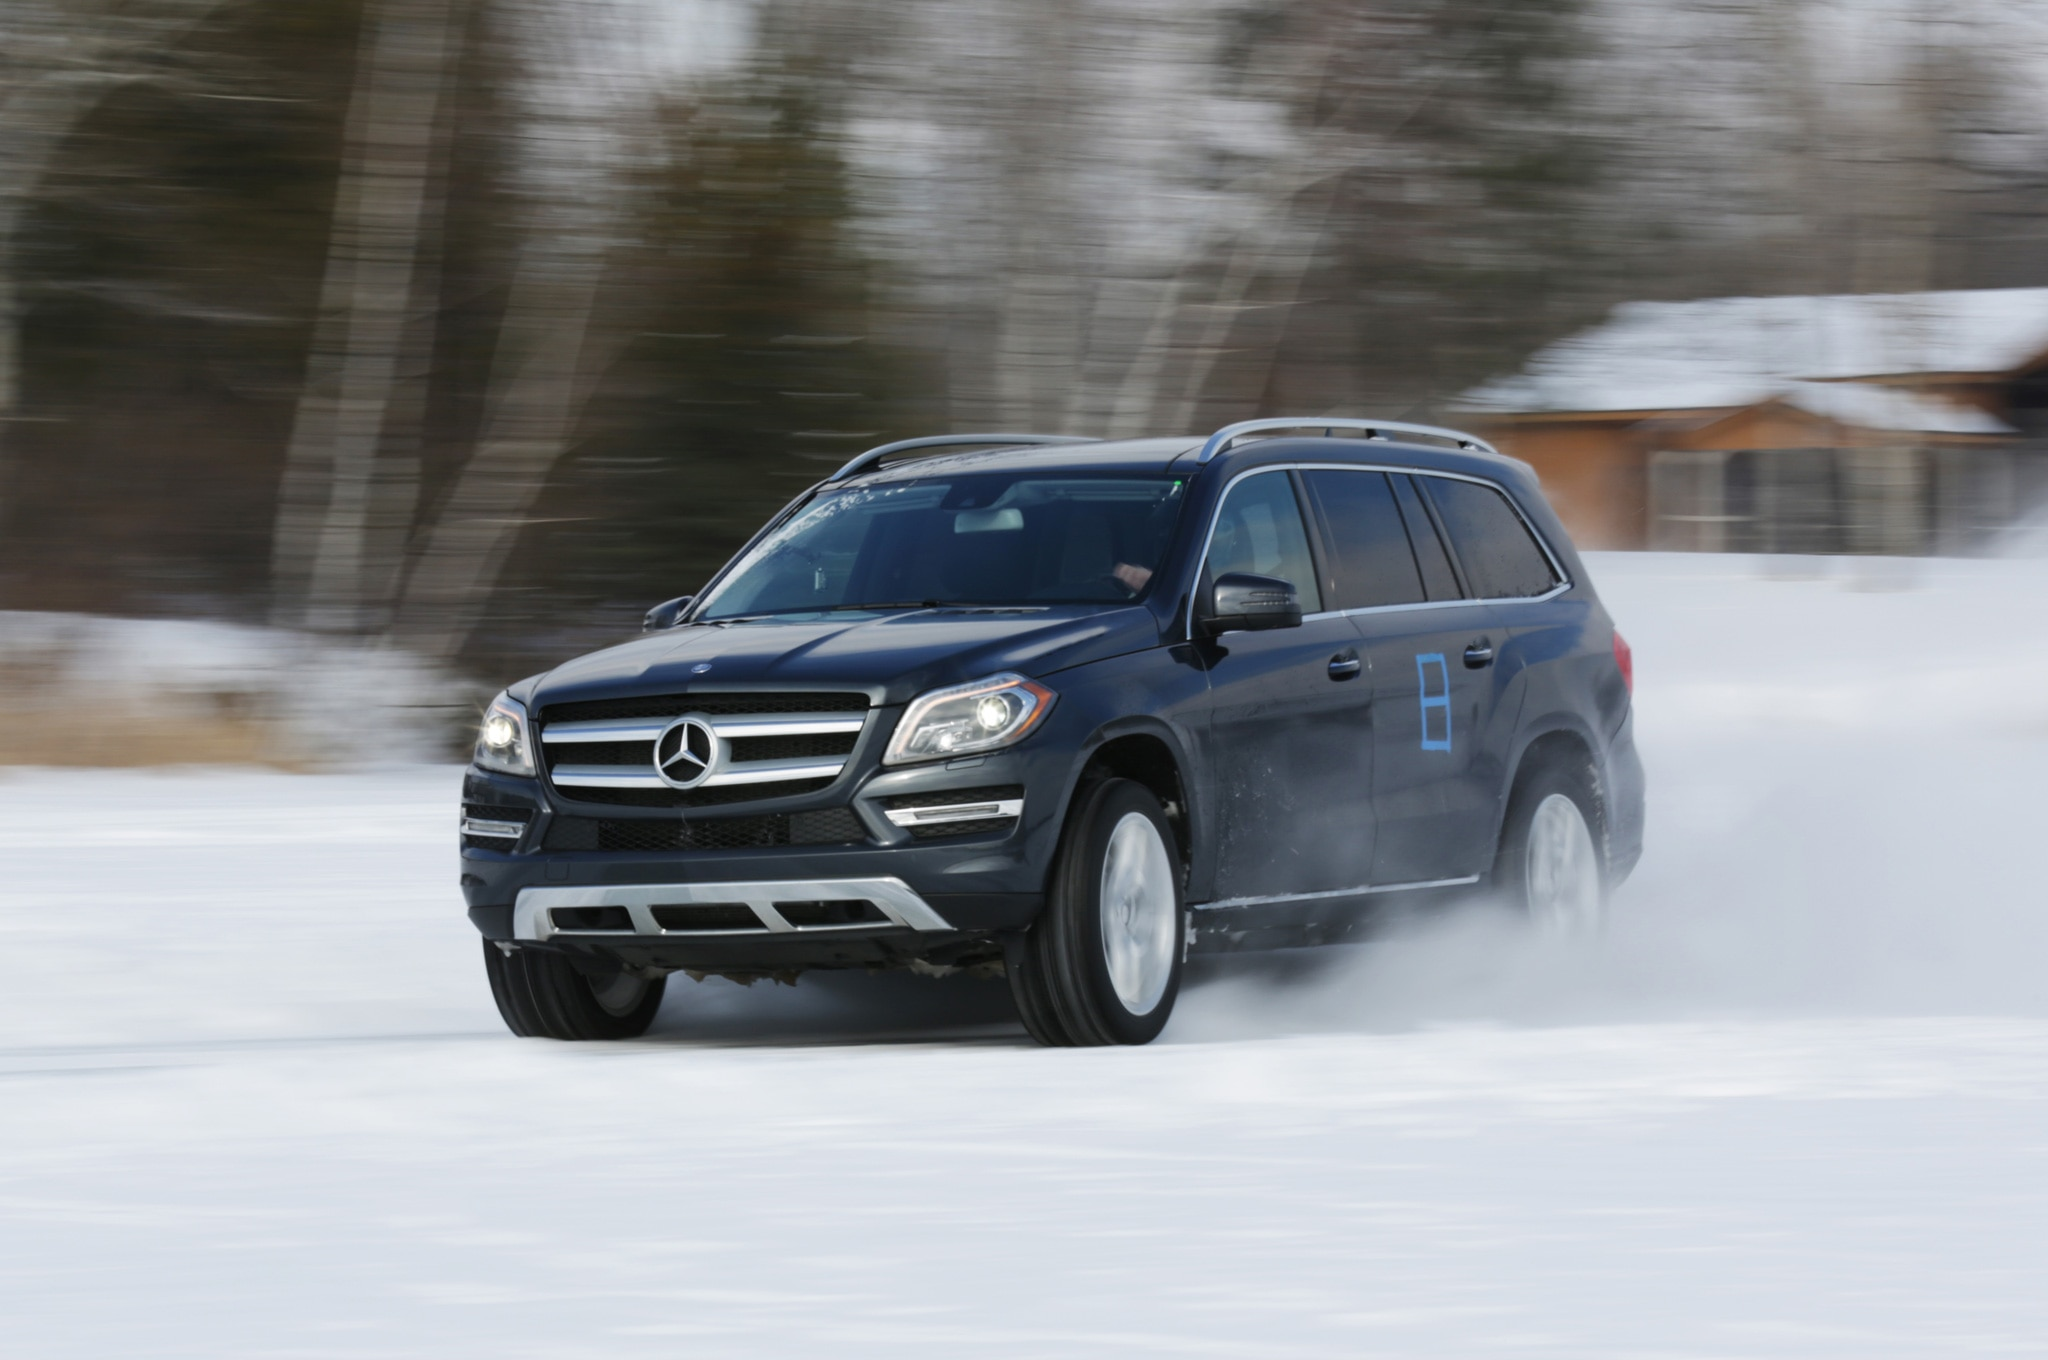 2013 Mercedes Benz GL450 Front Three Quarters View While Drifting1